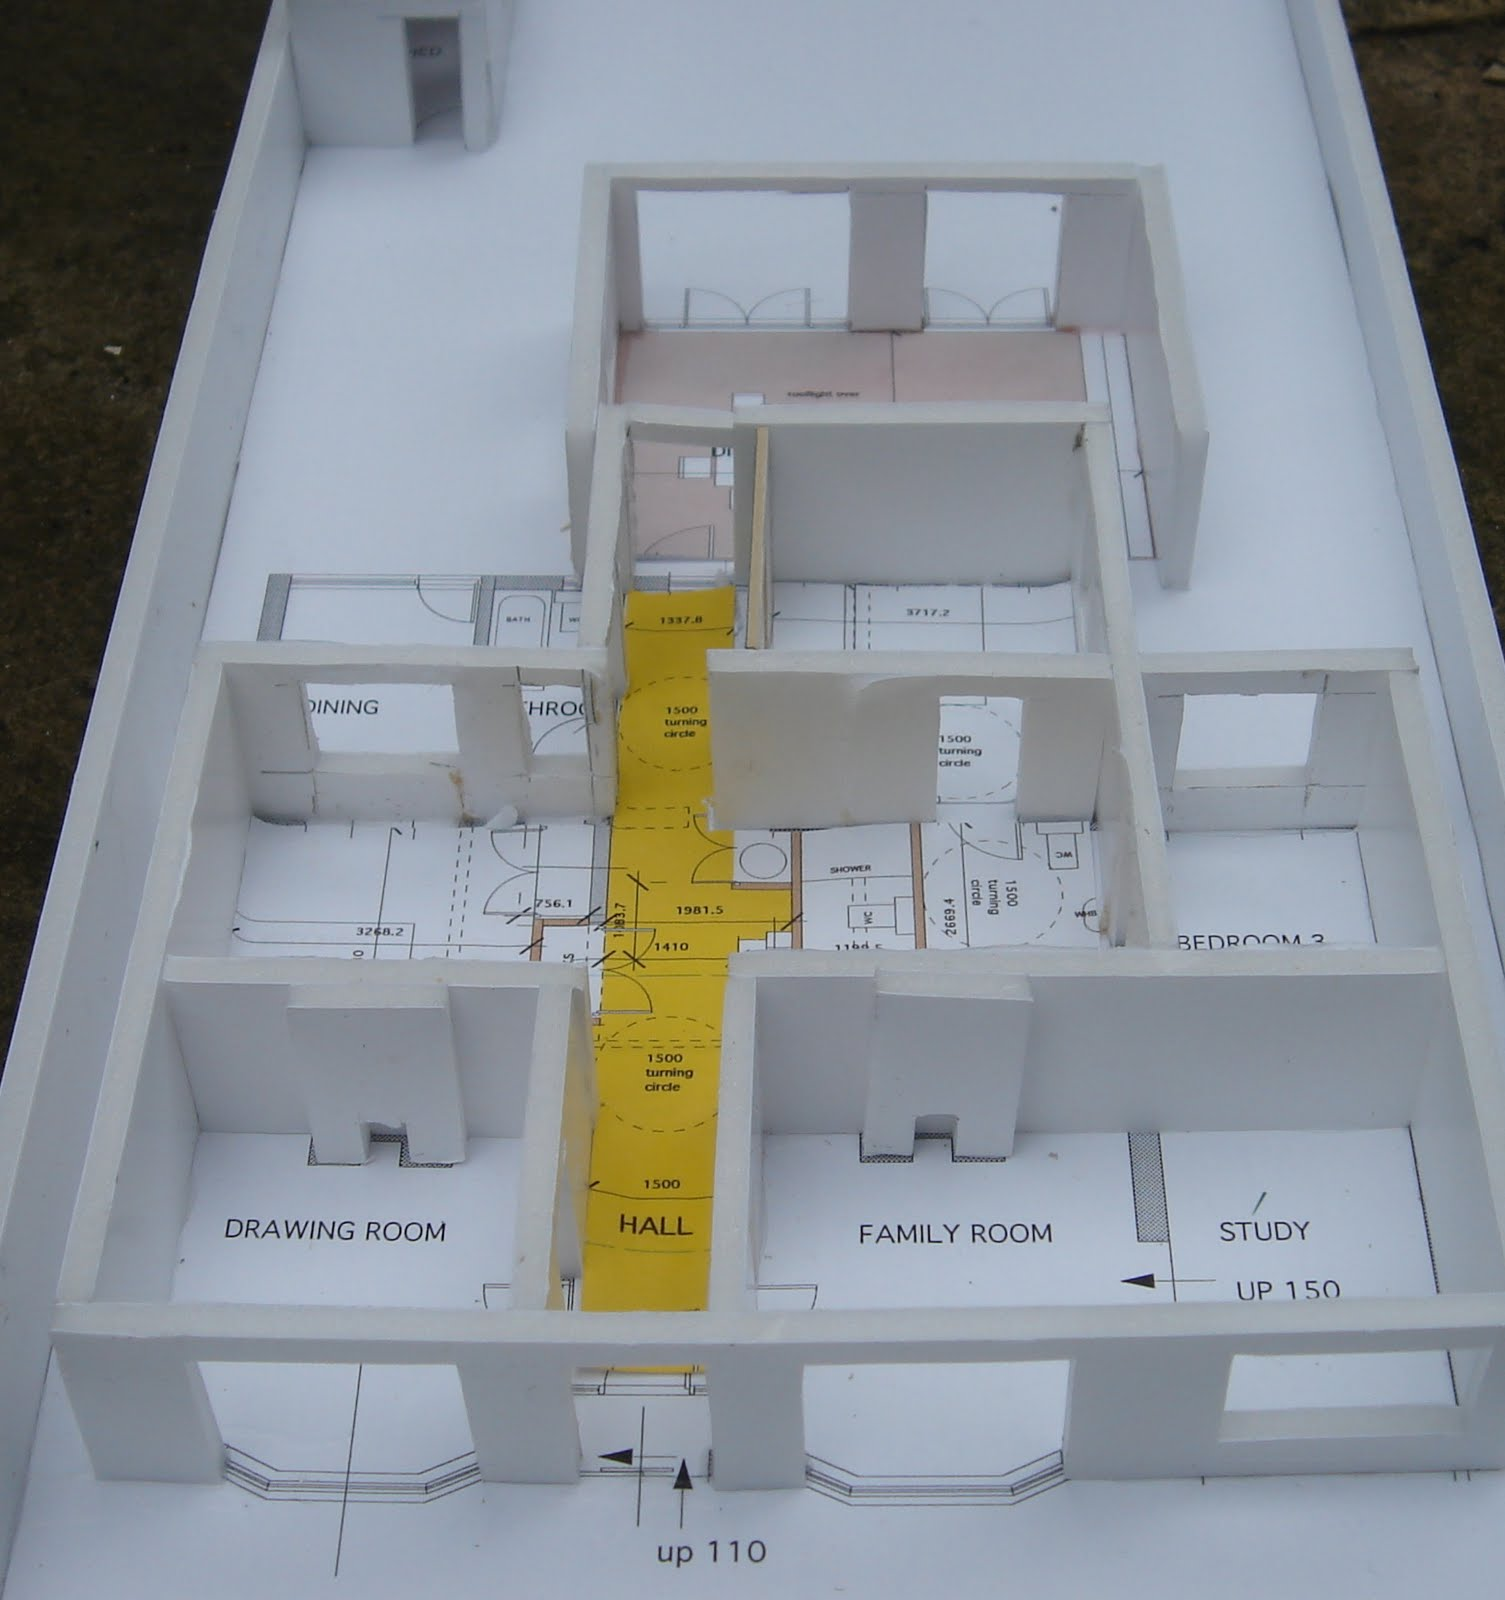 Aba architects return of the study model for Foam panel house